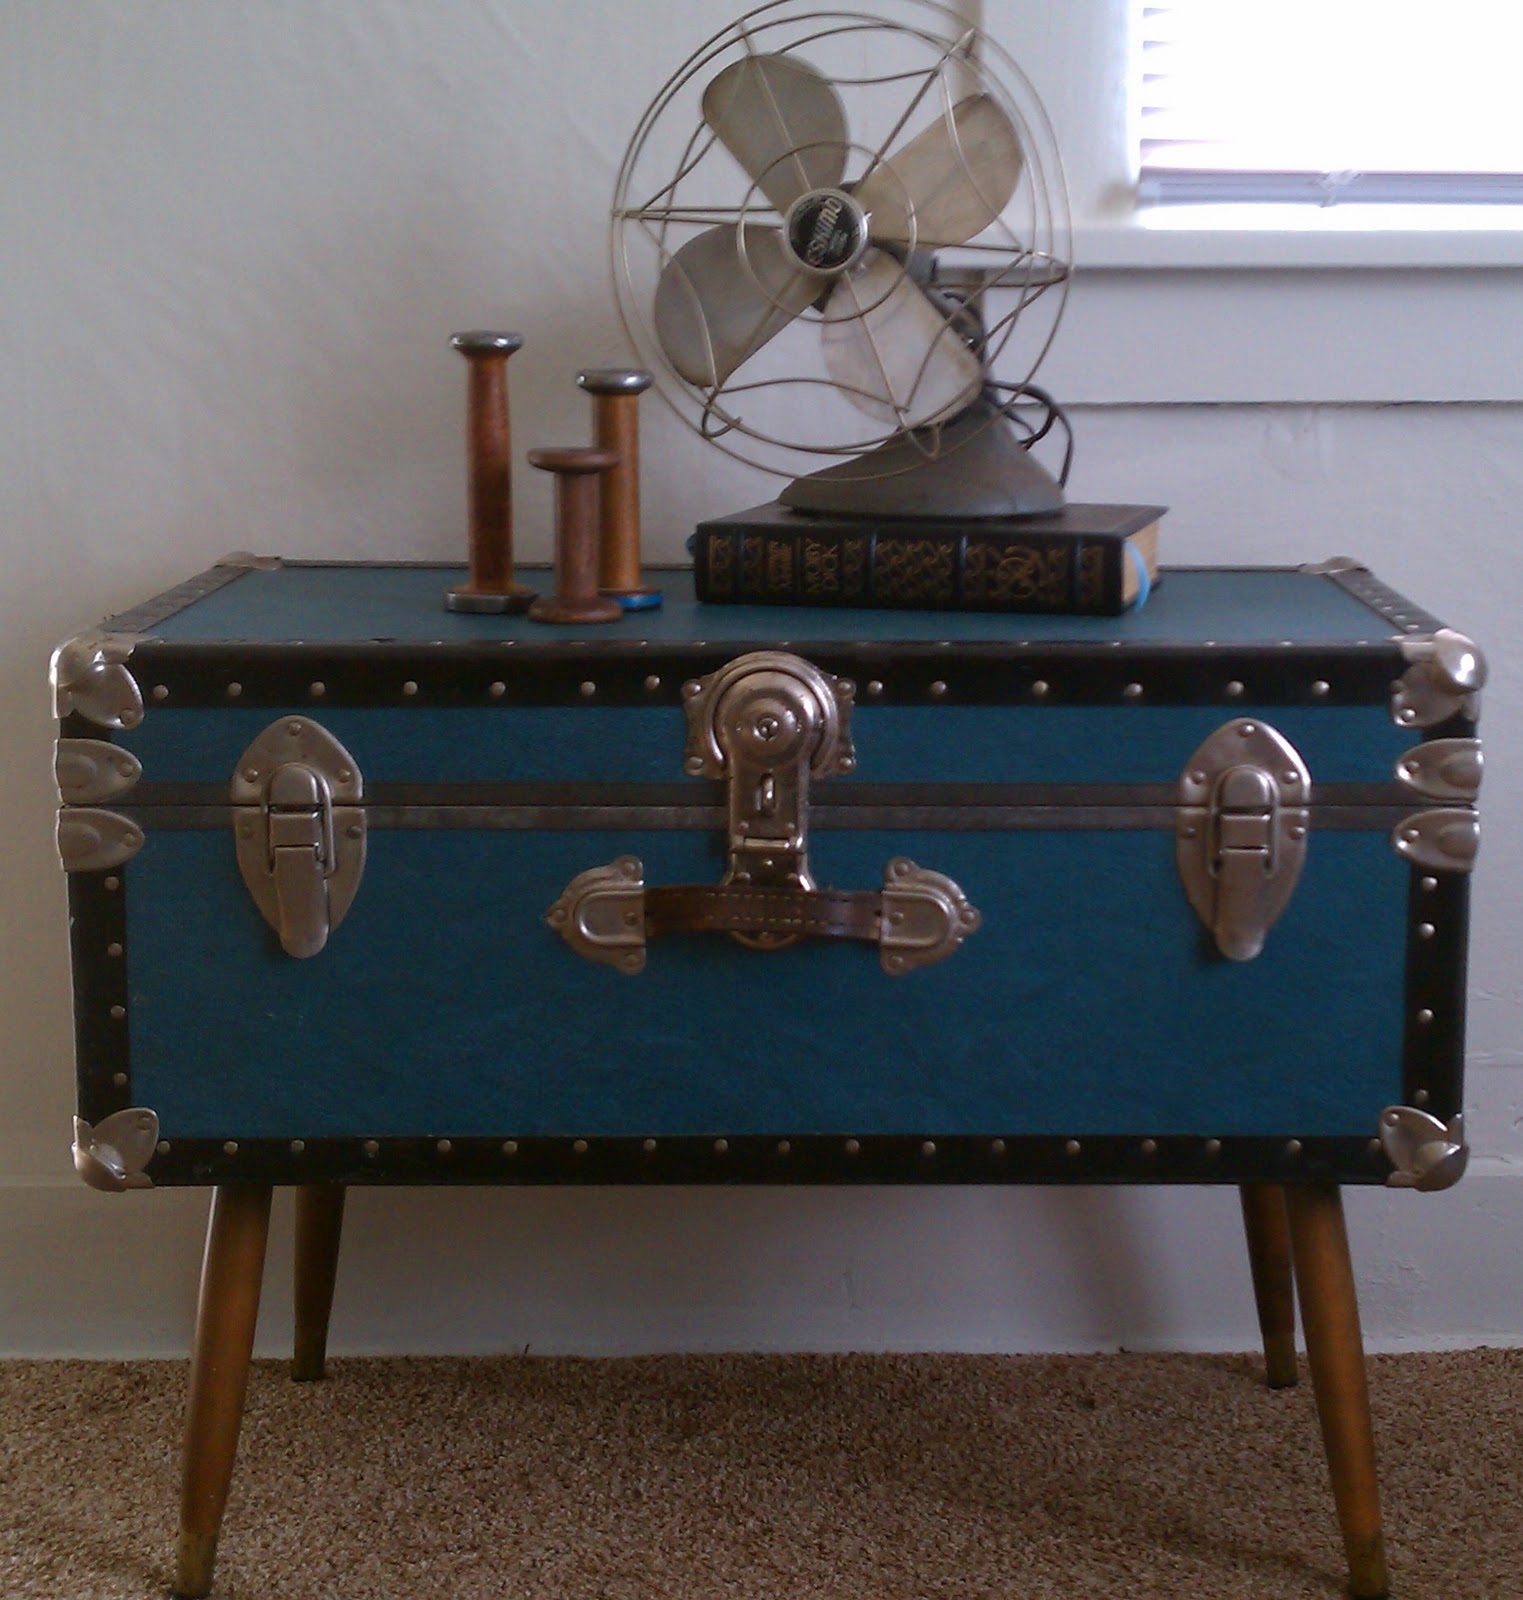 Low stand fan on steamer trunk coffee table in bedroom with beige carpeting wicker trunk coffee Trunks coffee tables